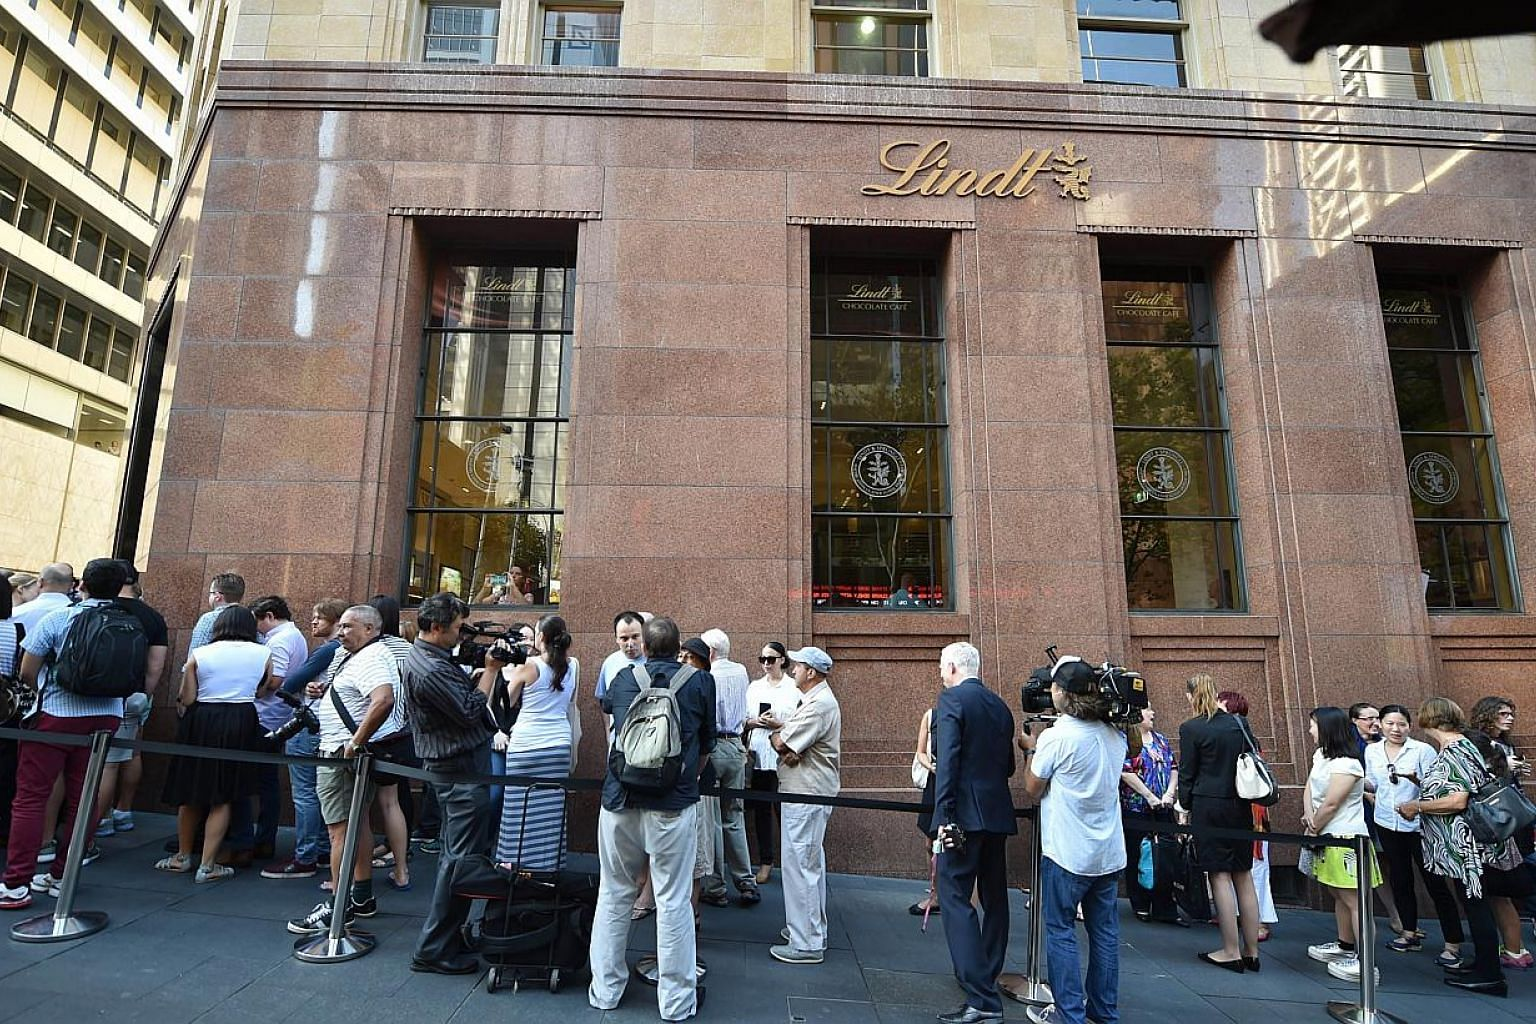 """Members of the public queue outside the Lindt Cafe at Martin Place in Sydney ahead of the re-opening on March 20, 2015.A self-styled sheikh who staged a siege at the cafe last year suffered """"grandiose delusions"""" and was once kicked out of"""